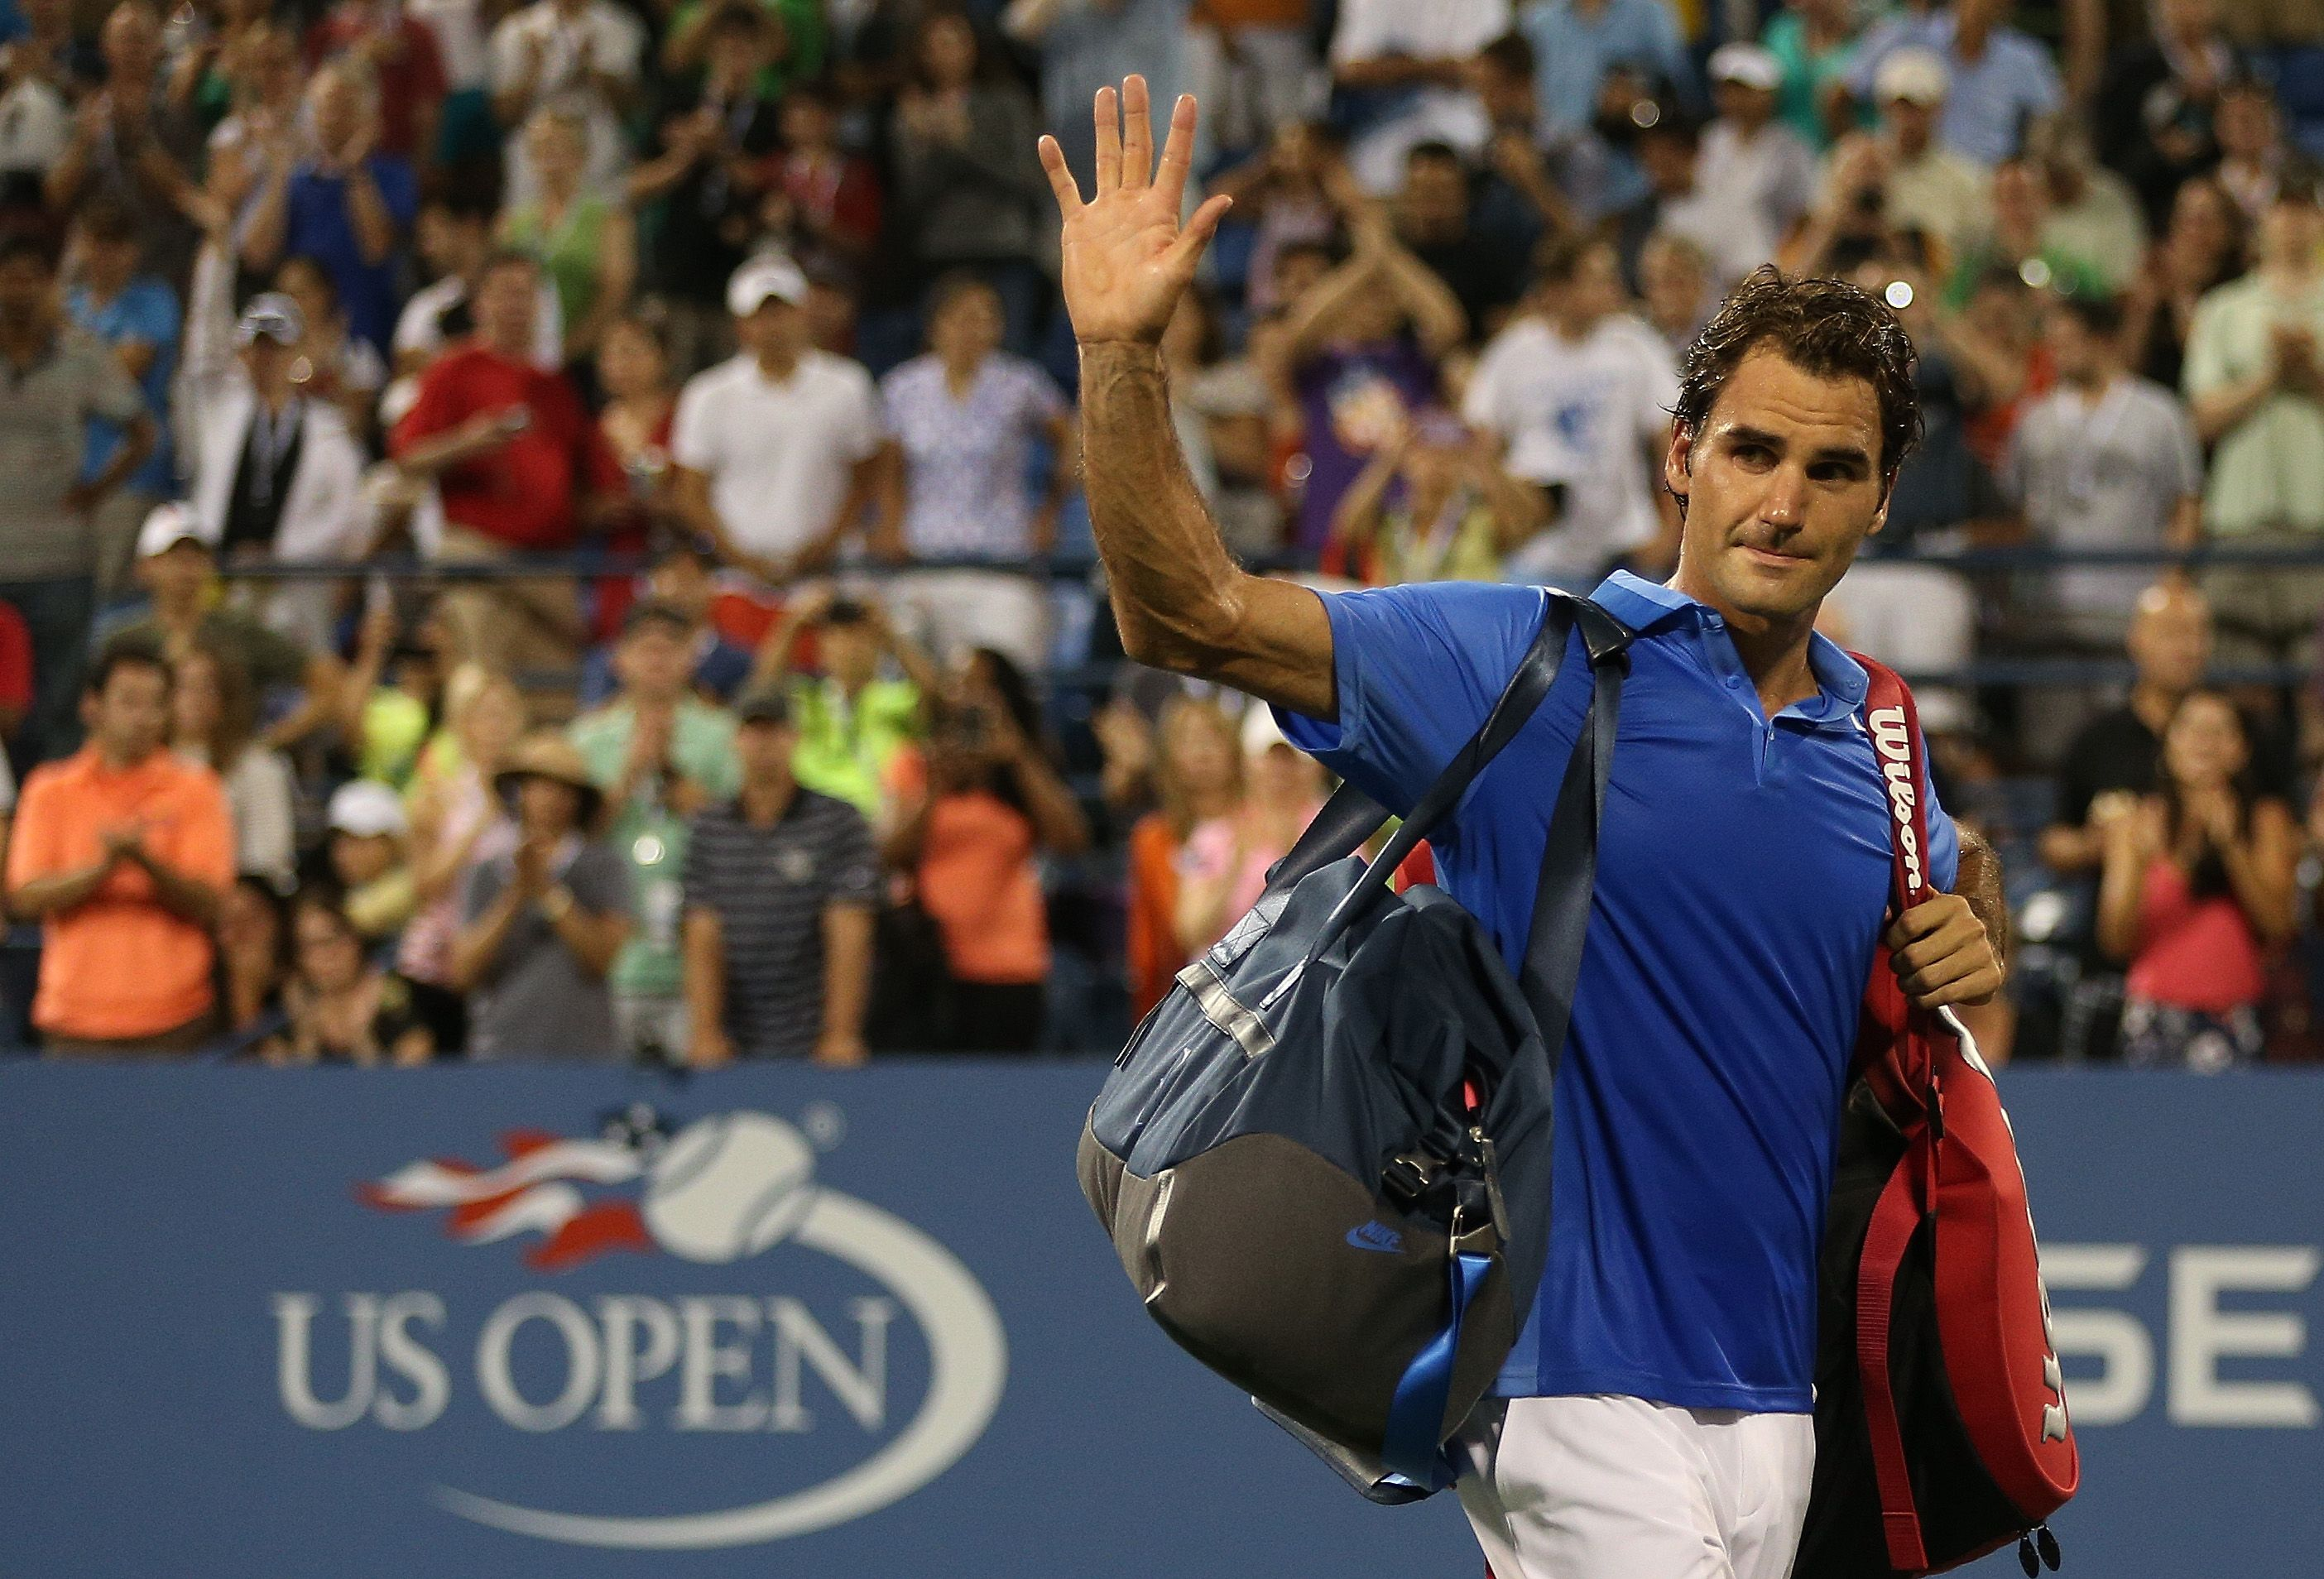 Roger Federer Was Knocked Out Of The Us Open On August 3 2013 After Losing To Tommy Robredo In The Fourth Round In S Tommy Robredo Tennis World Roger Federer